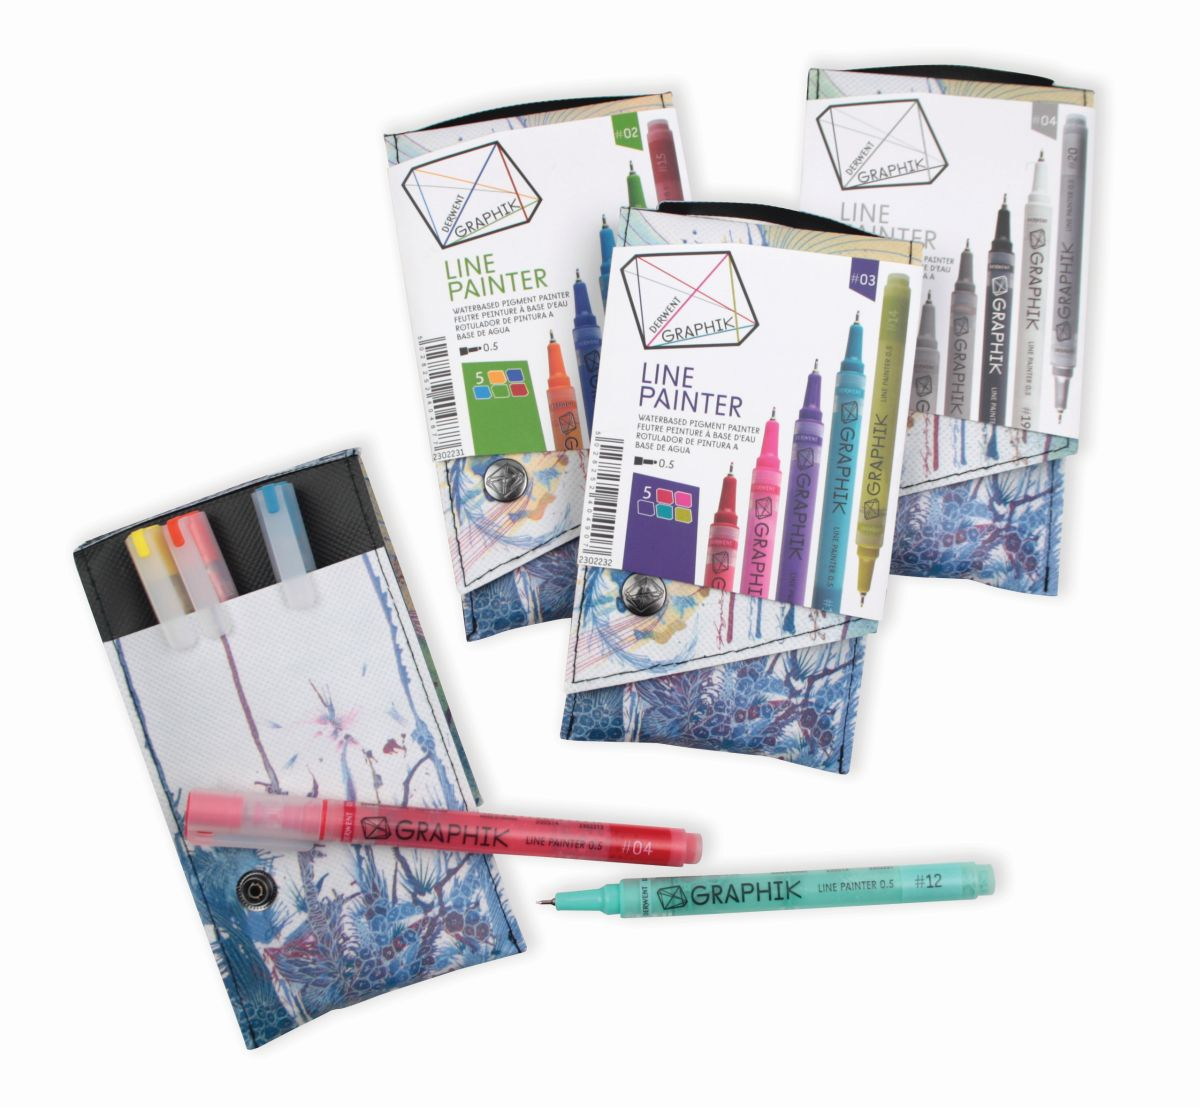 Derwent Graphik Line Paint 0.5 5-er Sets